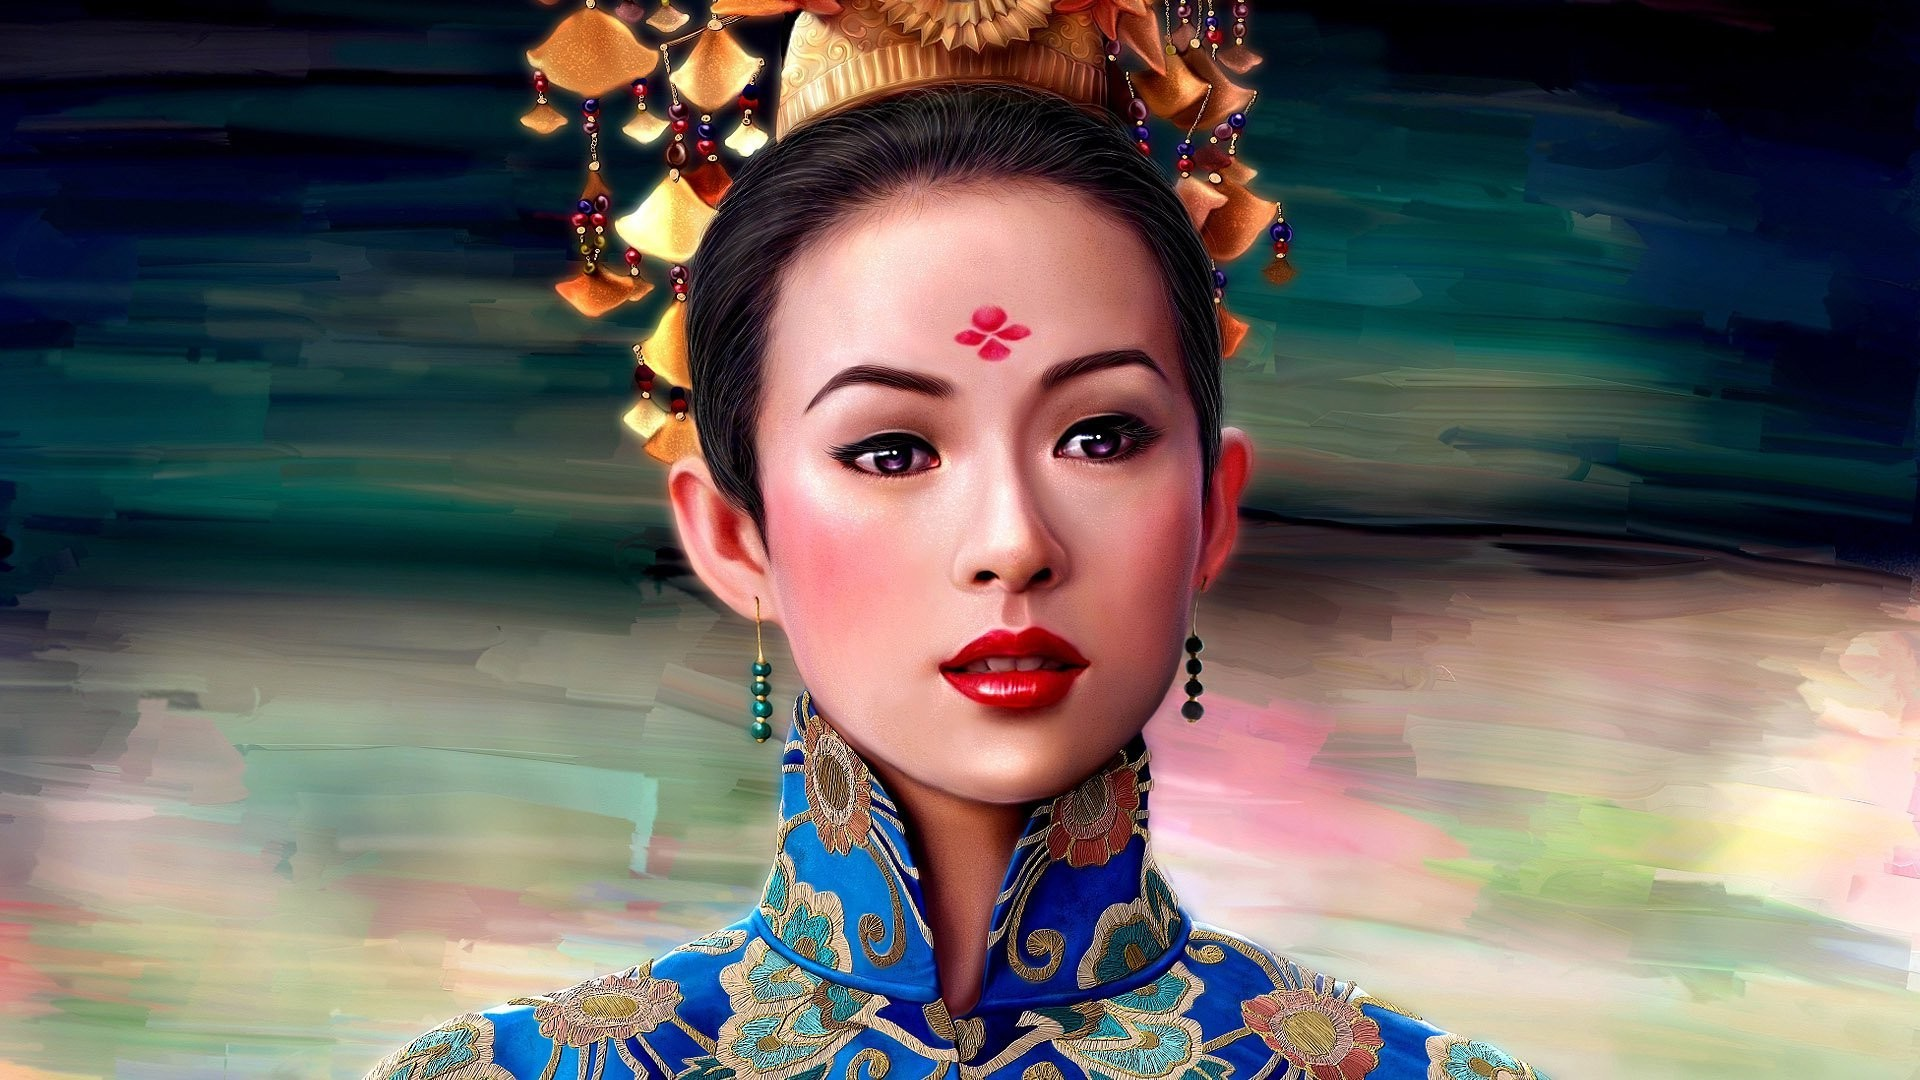 Geisha wallpaper 5232 1920x1080